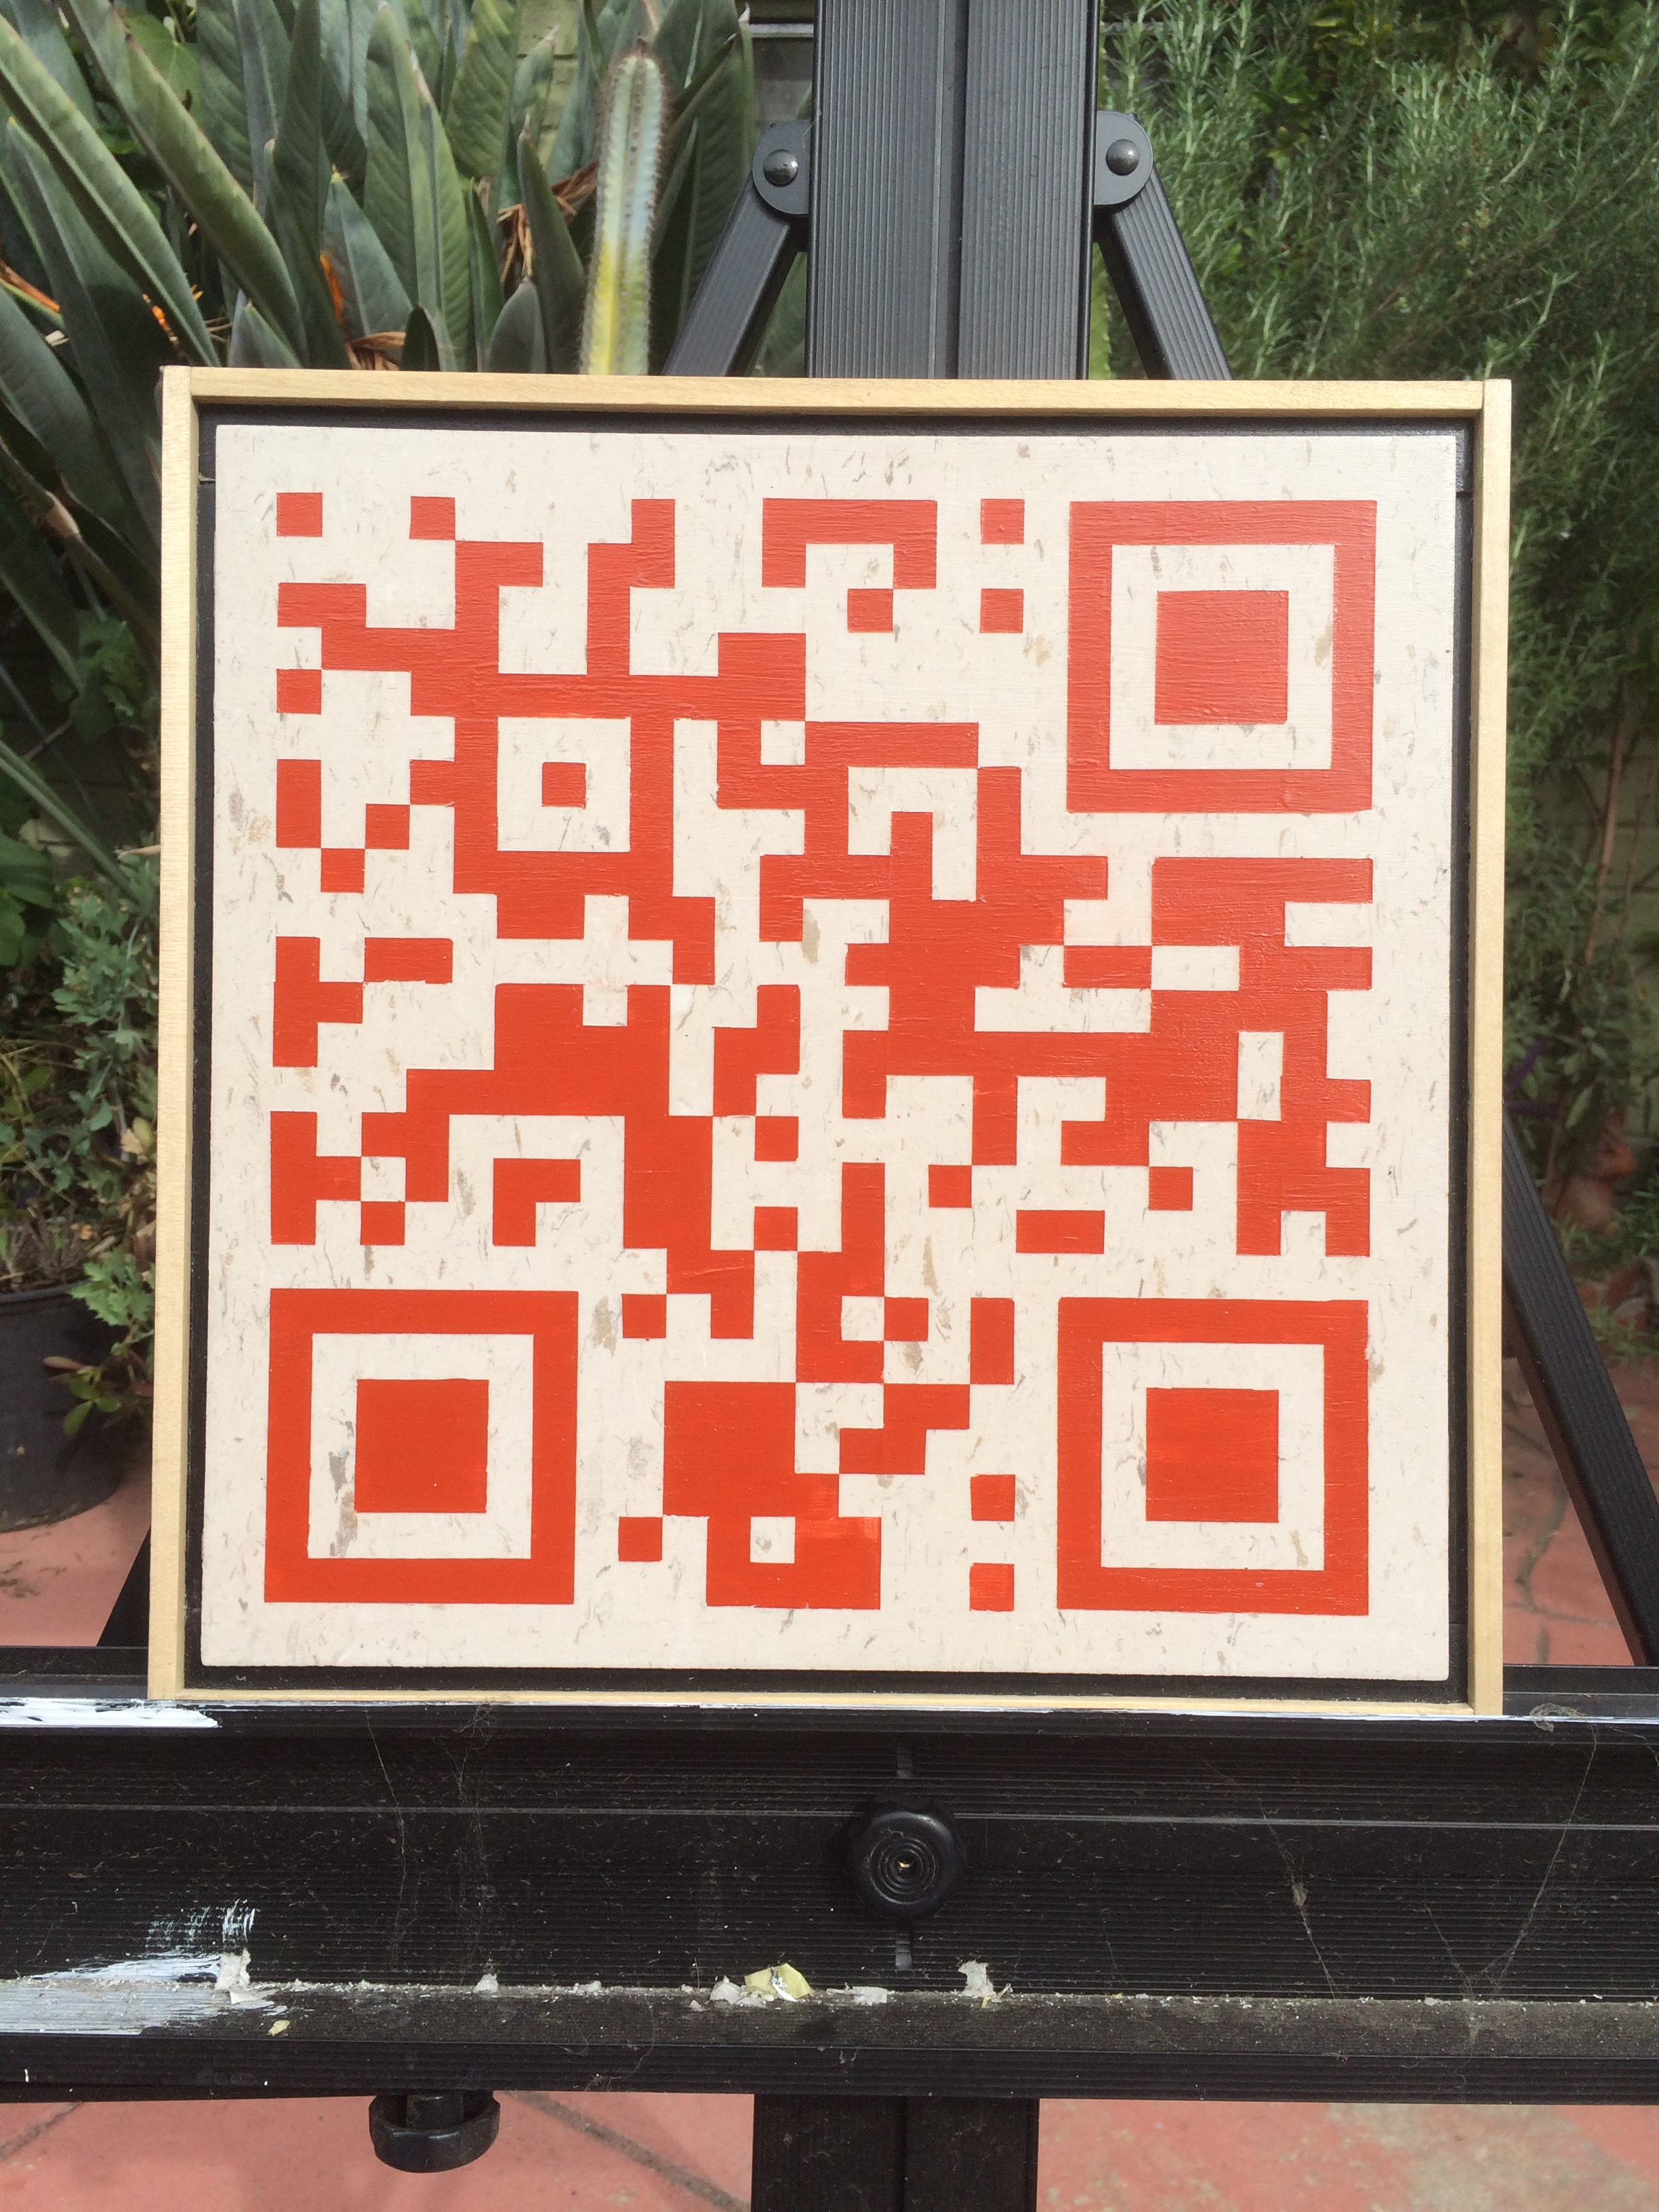 QR code that connects to images captured by the SDO detector AIA 304. (photo credit: John Robert Taylor)